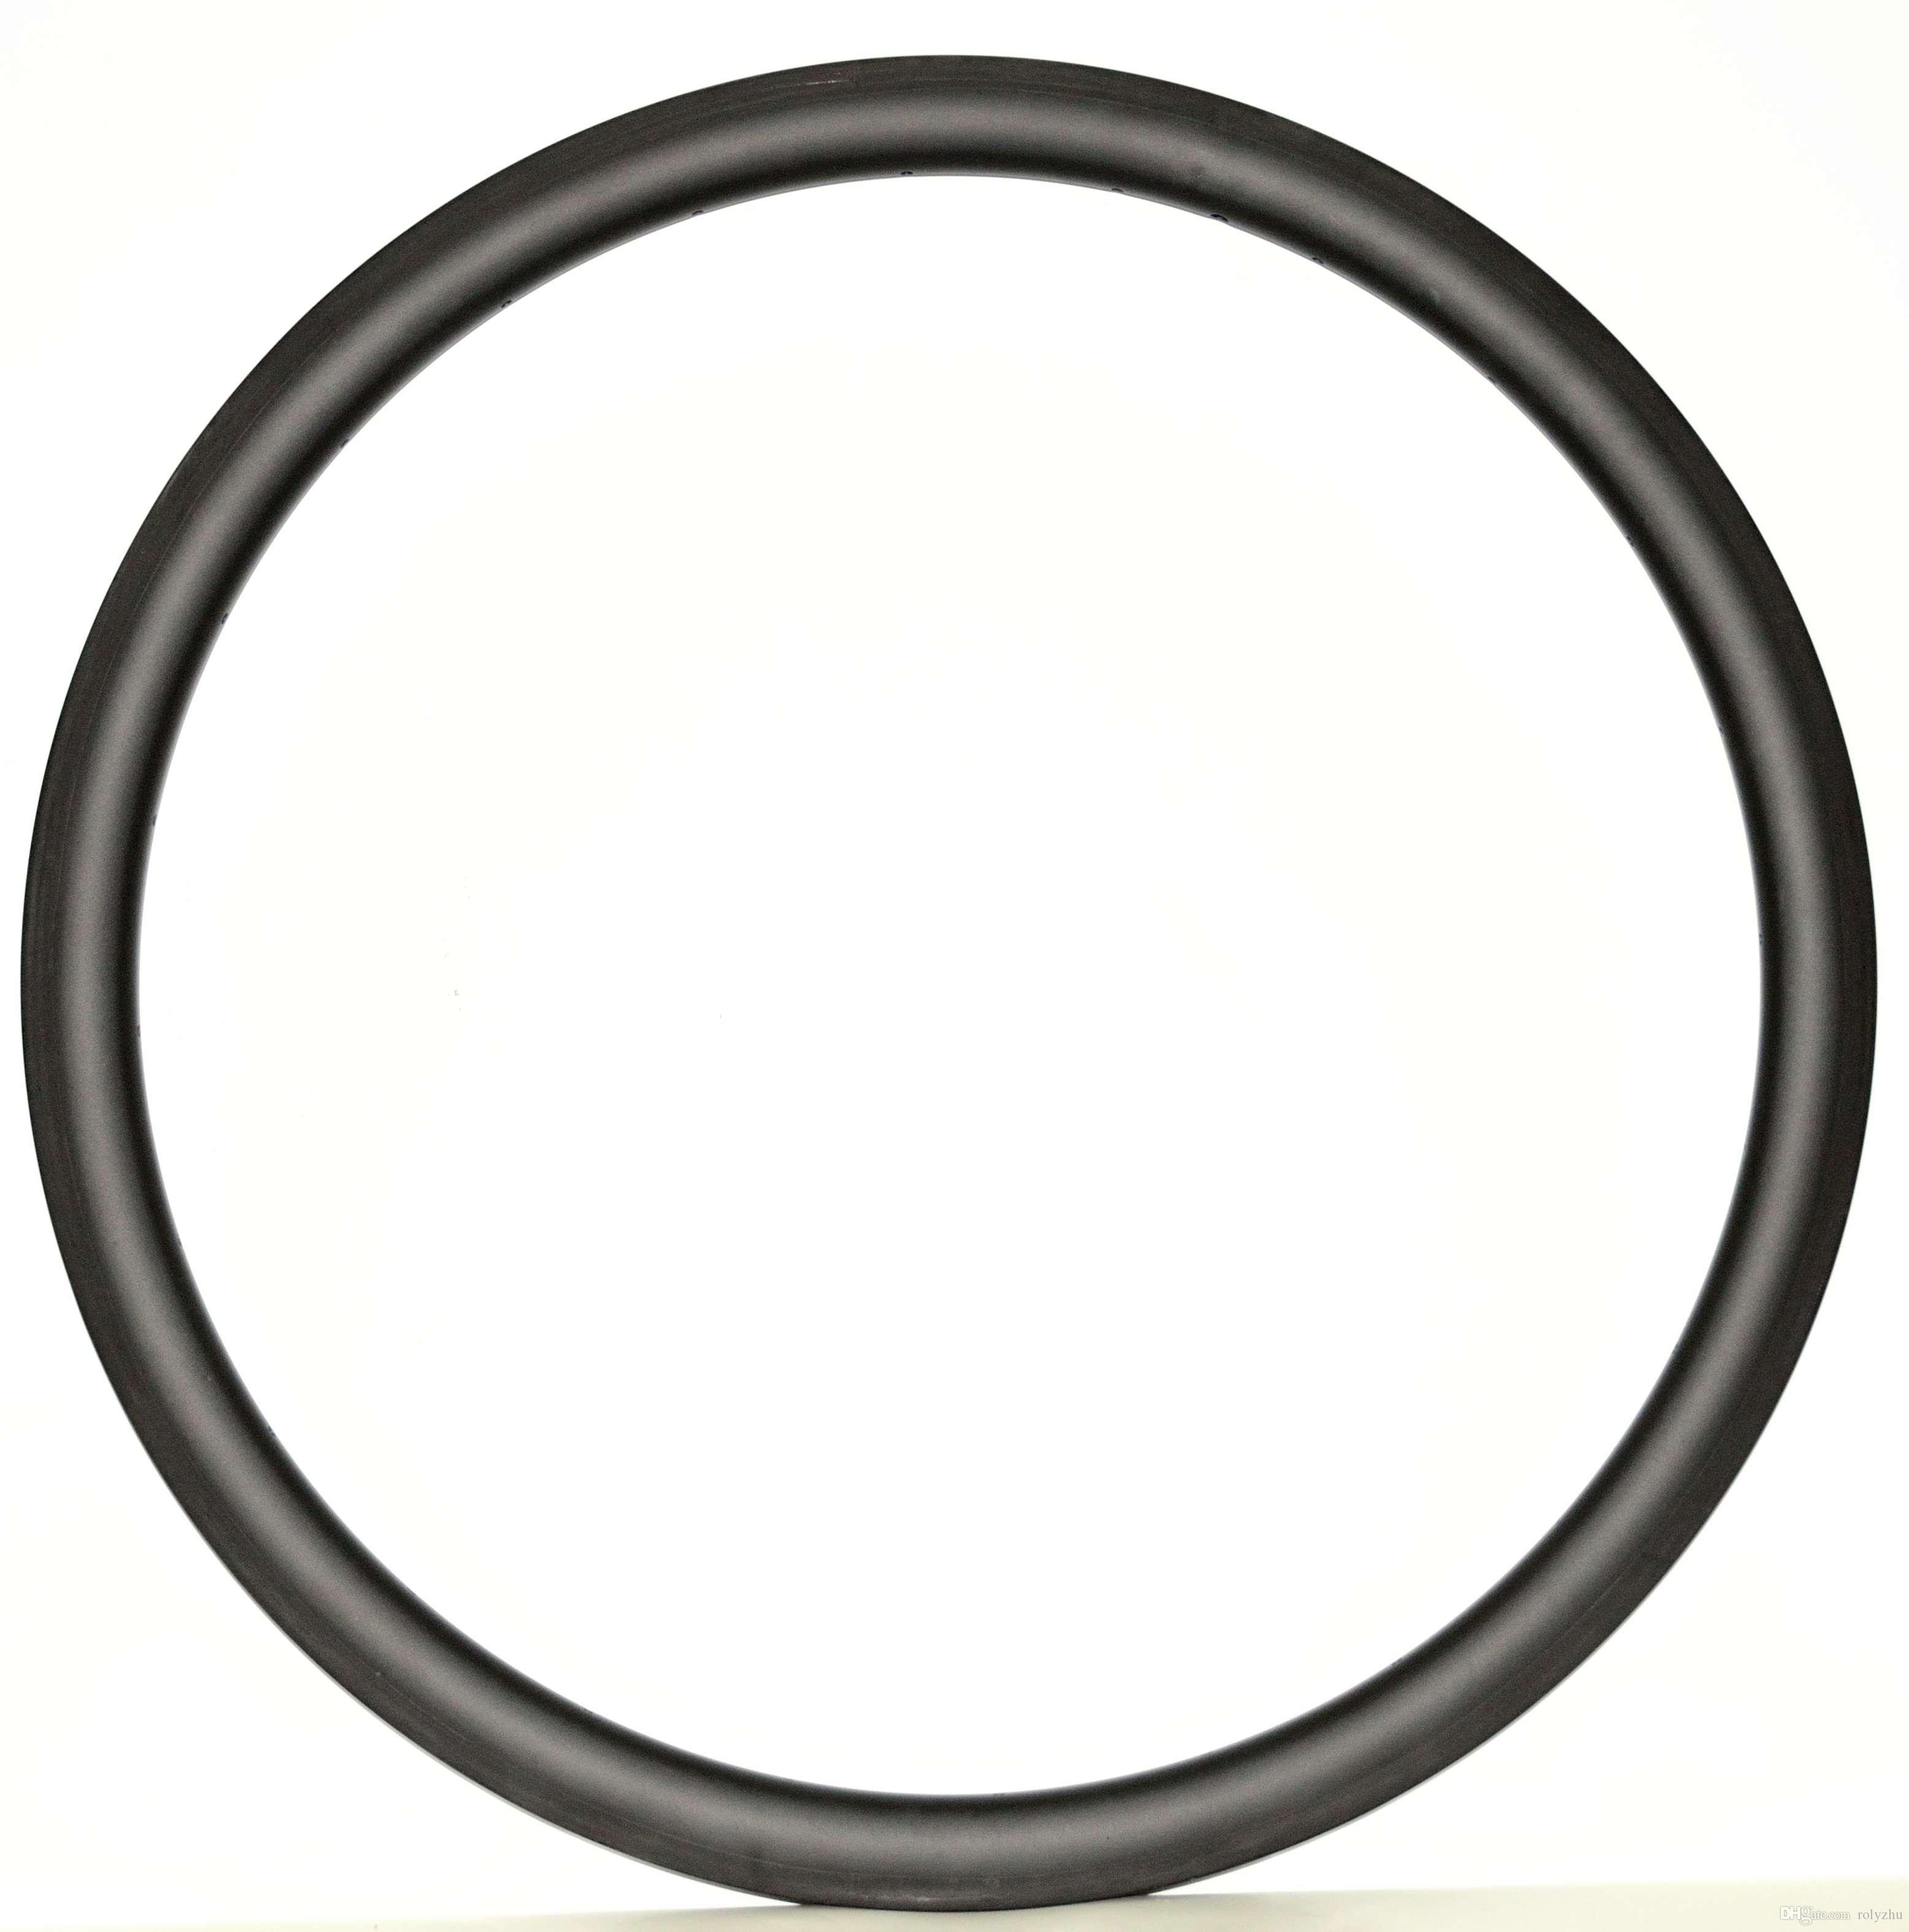 30c9b322262 Carbon Single Rim 700C 38mm Depth 23mm Width Light Weight Carbon ...